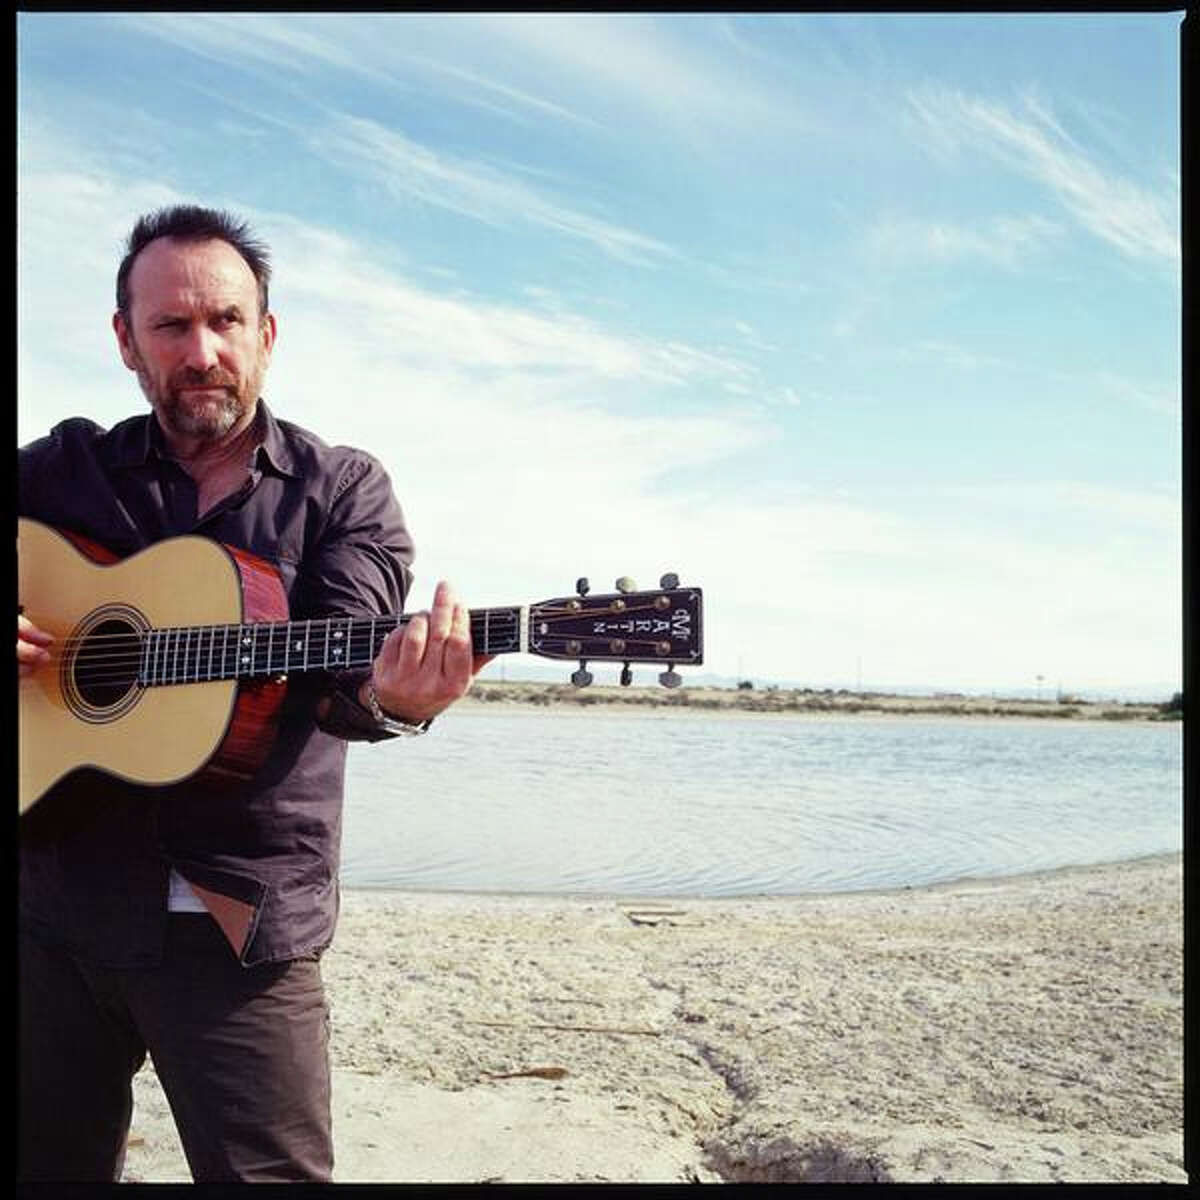 One of the most distinctive and commercial voices of the early '80s New Wave belonged to Men At Work frontman, singer-songwriter Colin Hay. The Australian rock act scored monster hits like